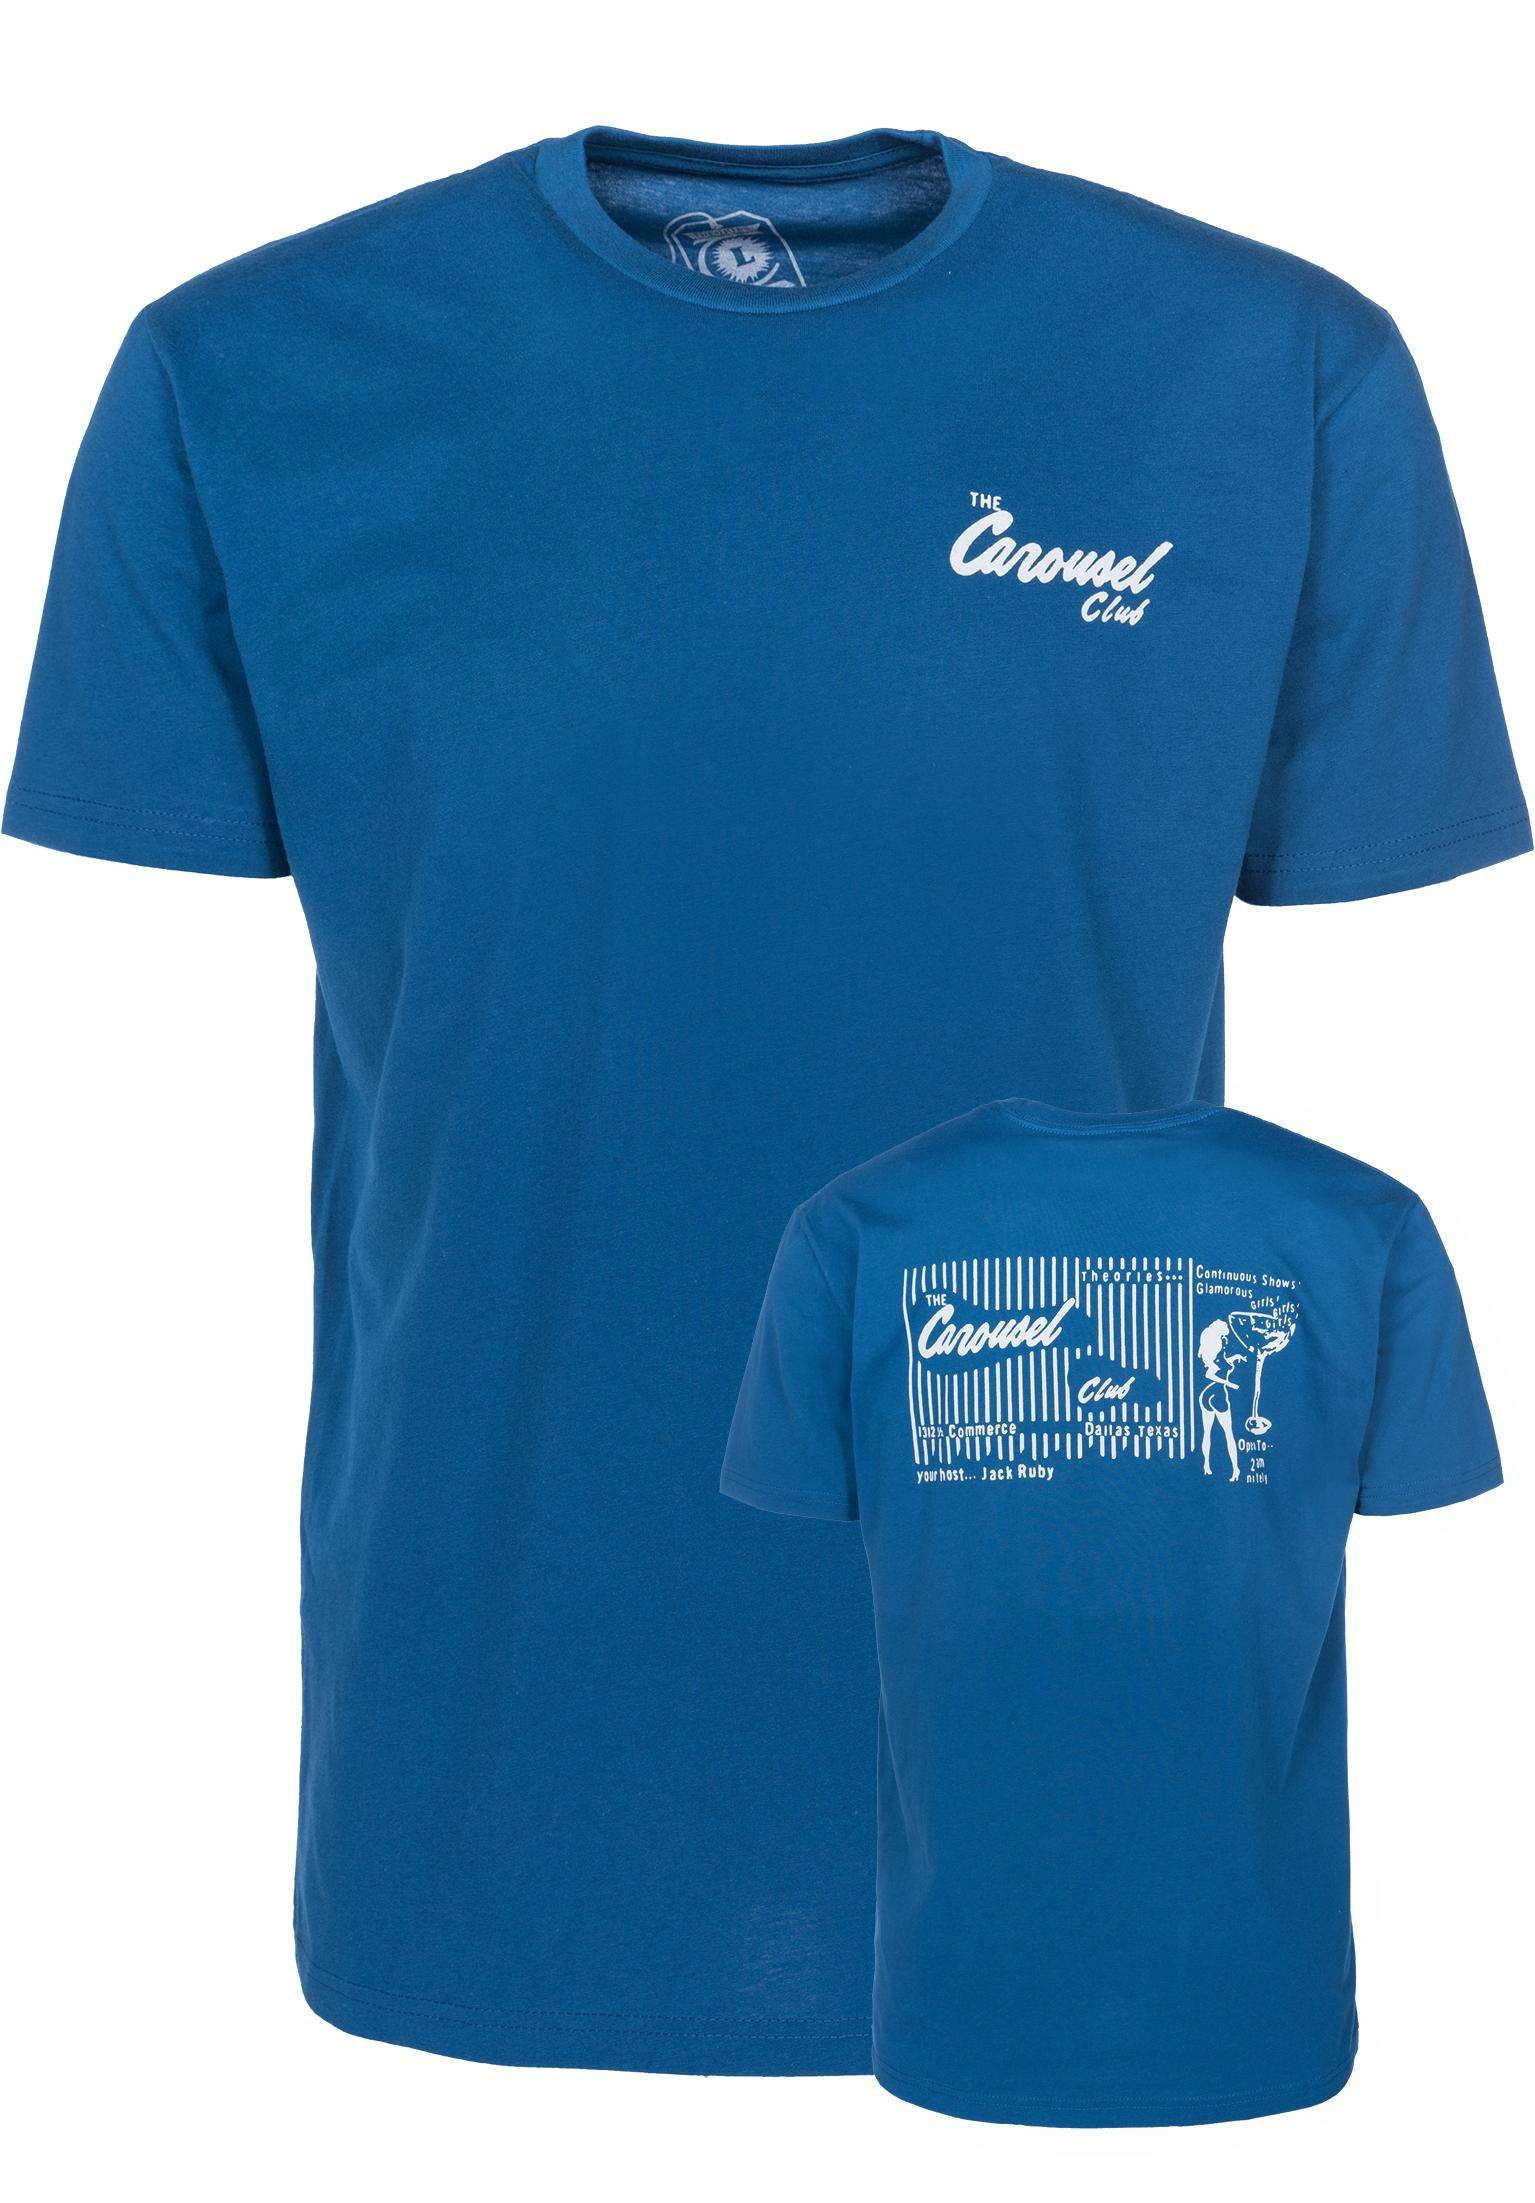 3bc6964862 Carousel Club Theories Of Atlantis T-Shirts in blue-blue for Men